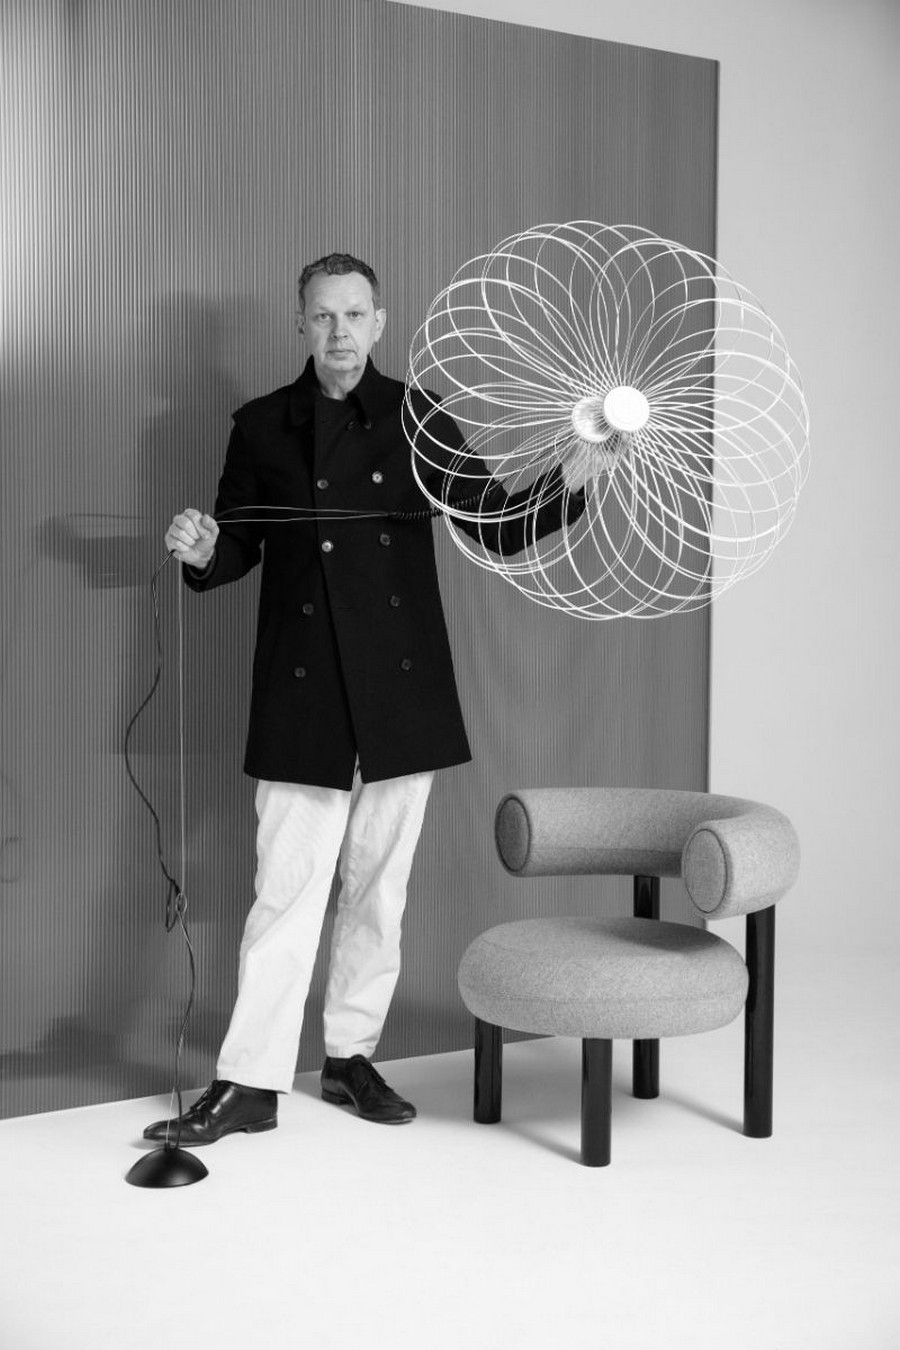 A look at Fat: the chair Tom Dixon will reveal at Milan Design Week milan design week A look at The Fat Chair by Tom Dixon | Best of Milan Design Week TomDixon6